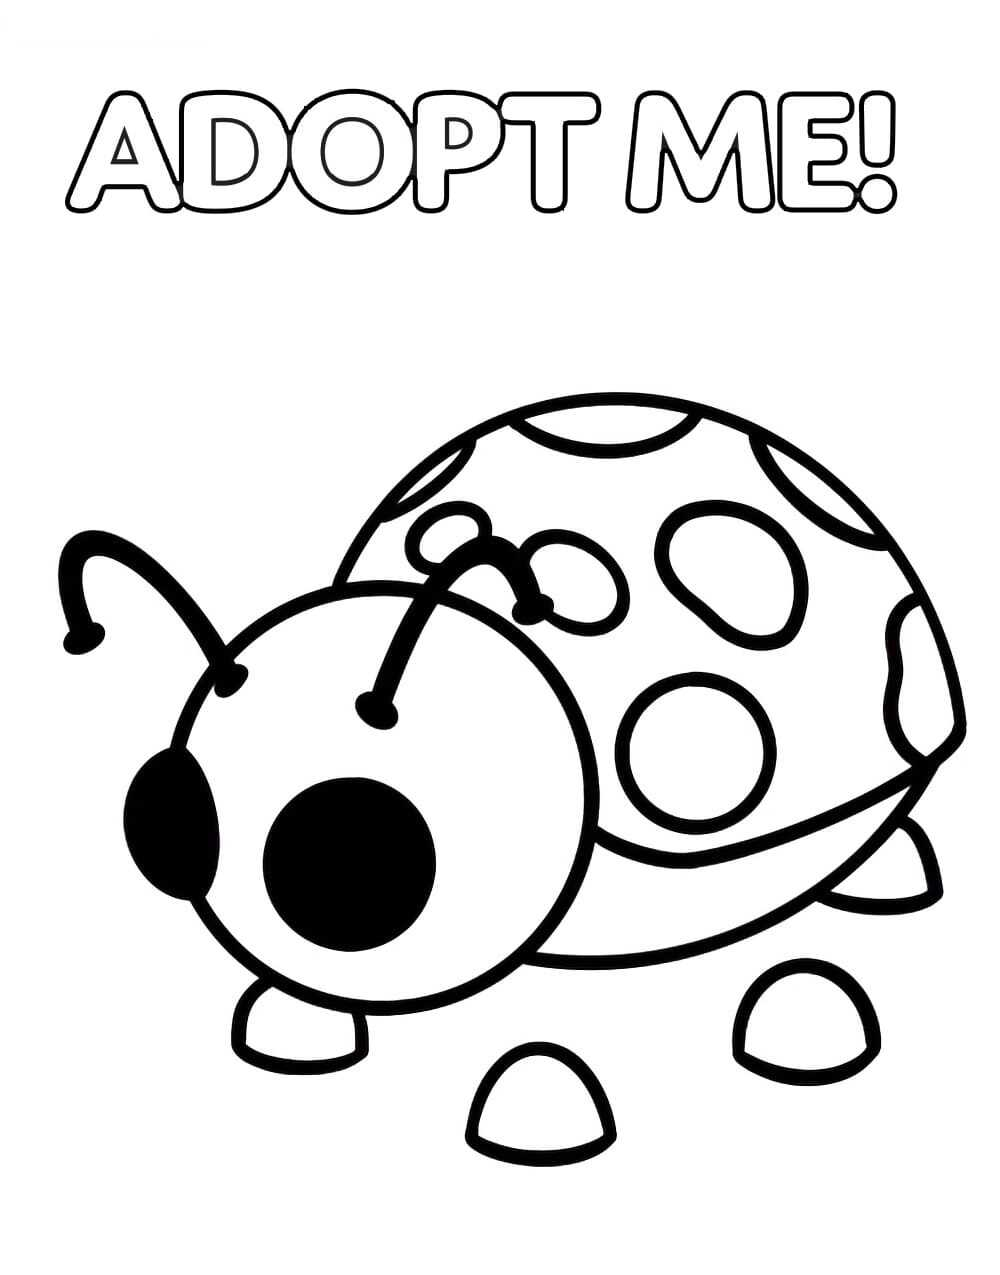 Adopt Me Coloring Pages